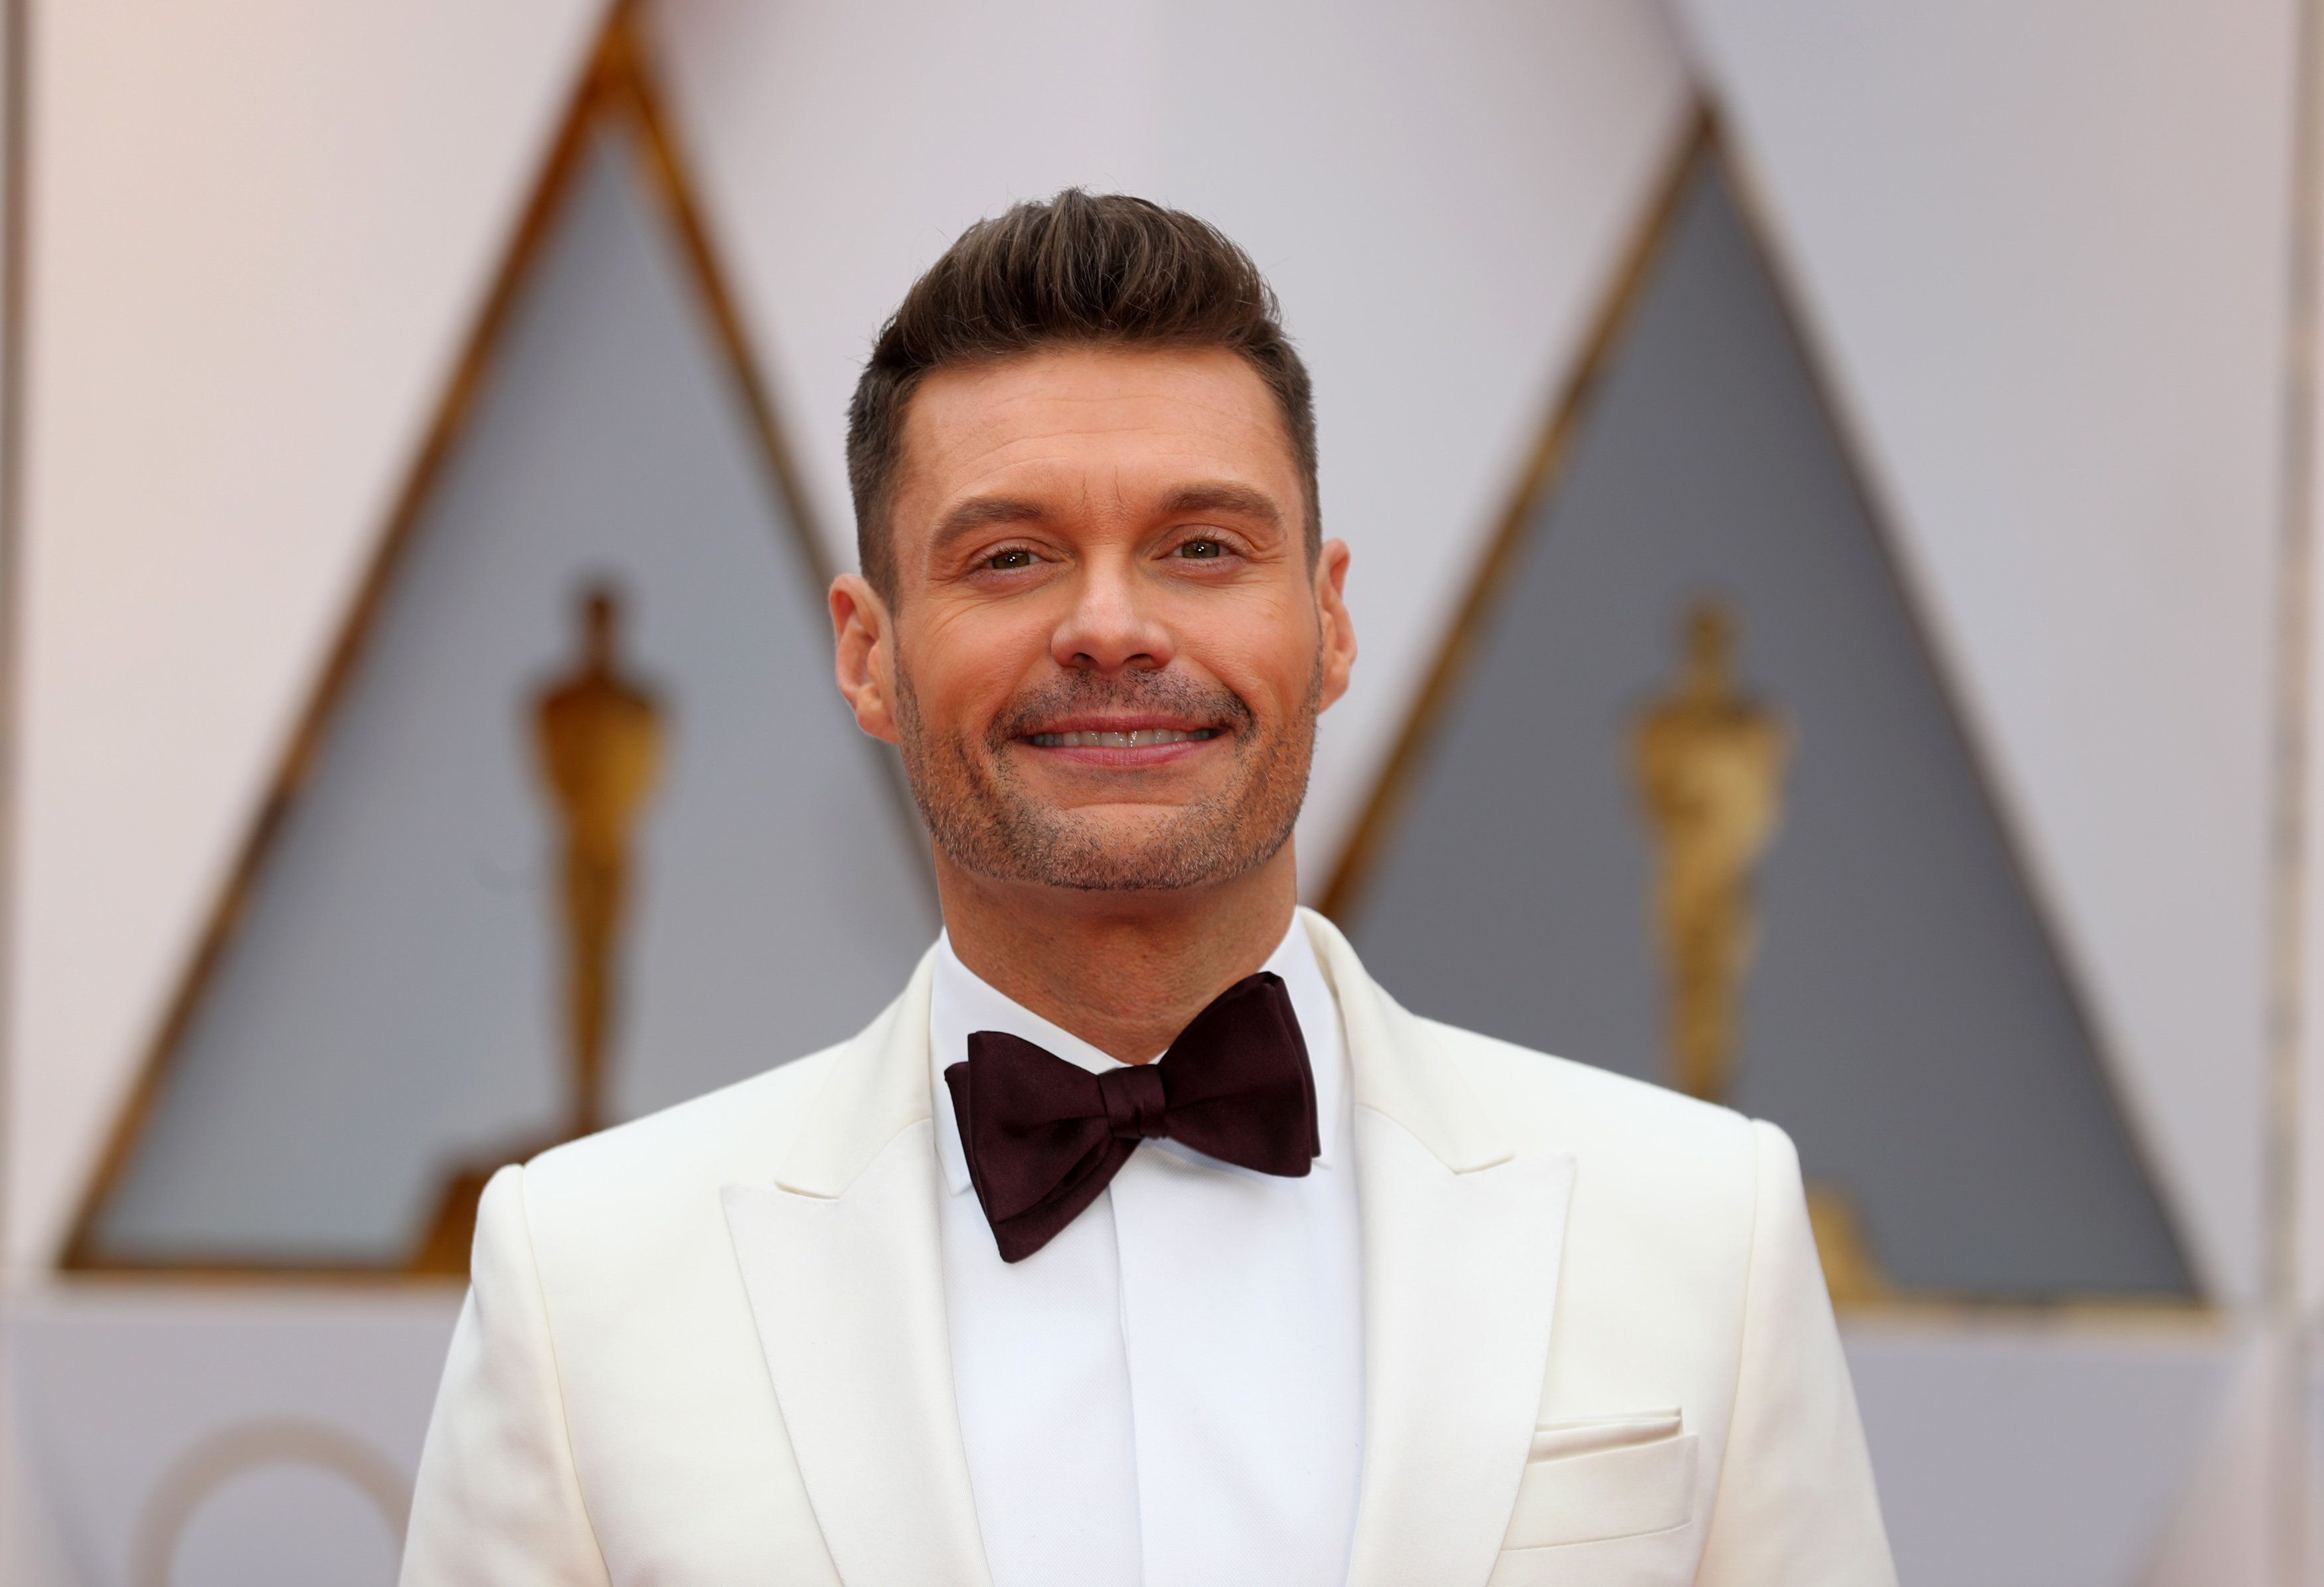 89th Academy Awards - Oscars Red Carpet Arrivals - Hollywood, California, U.S. - 26/02/17 - Television host Ryan Seacrest arrives. REUTERS/Mike Blake